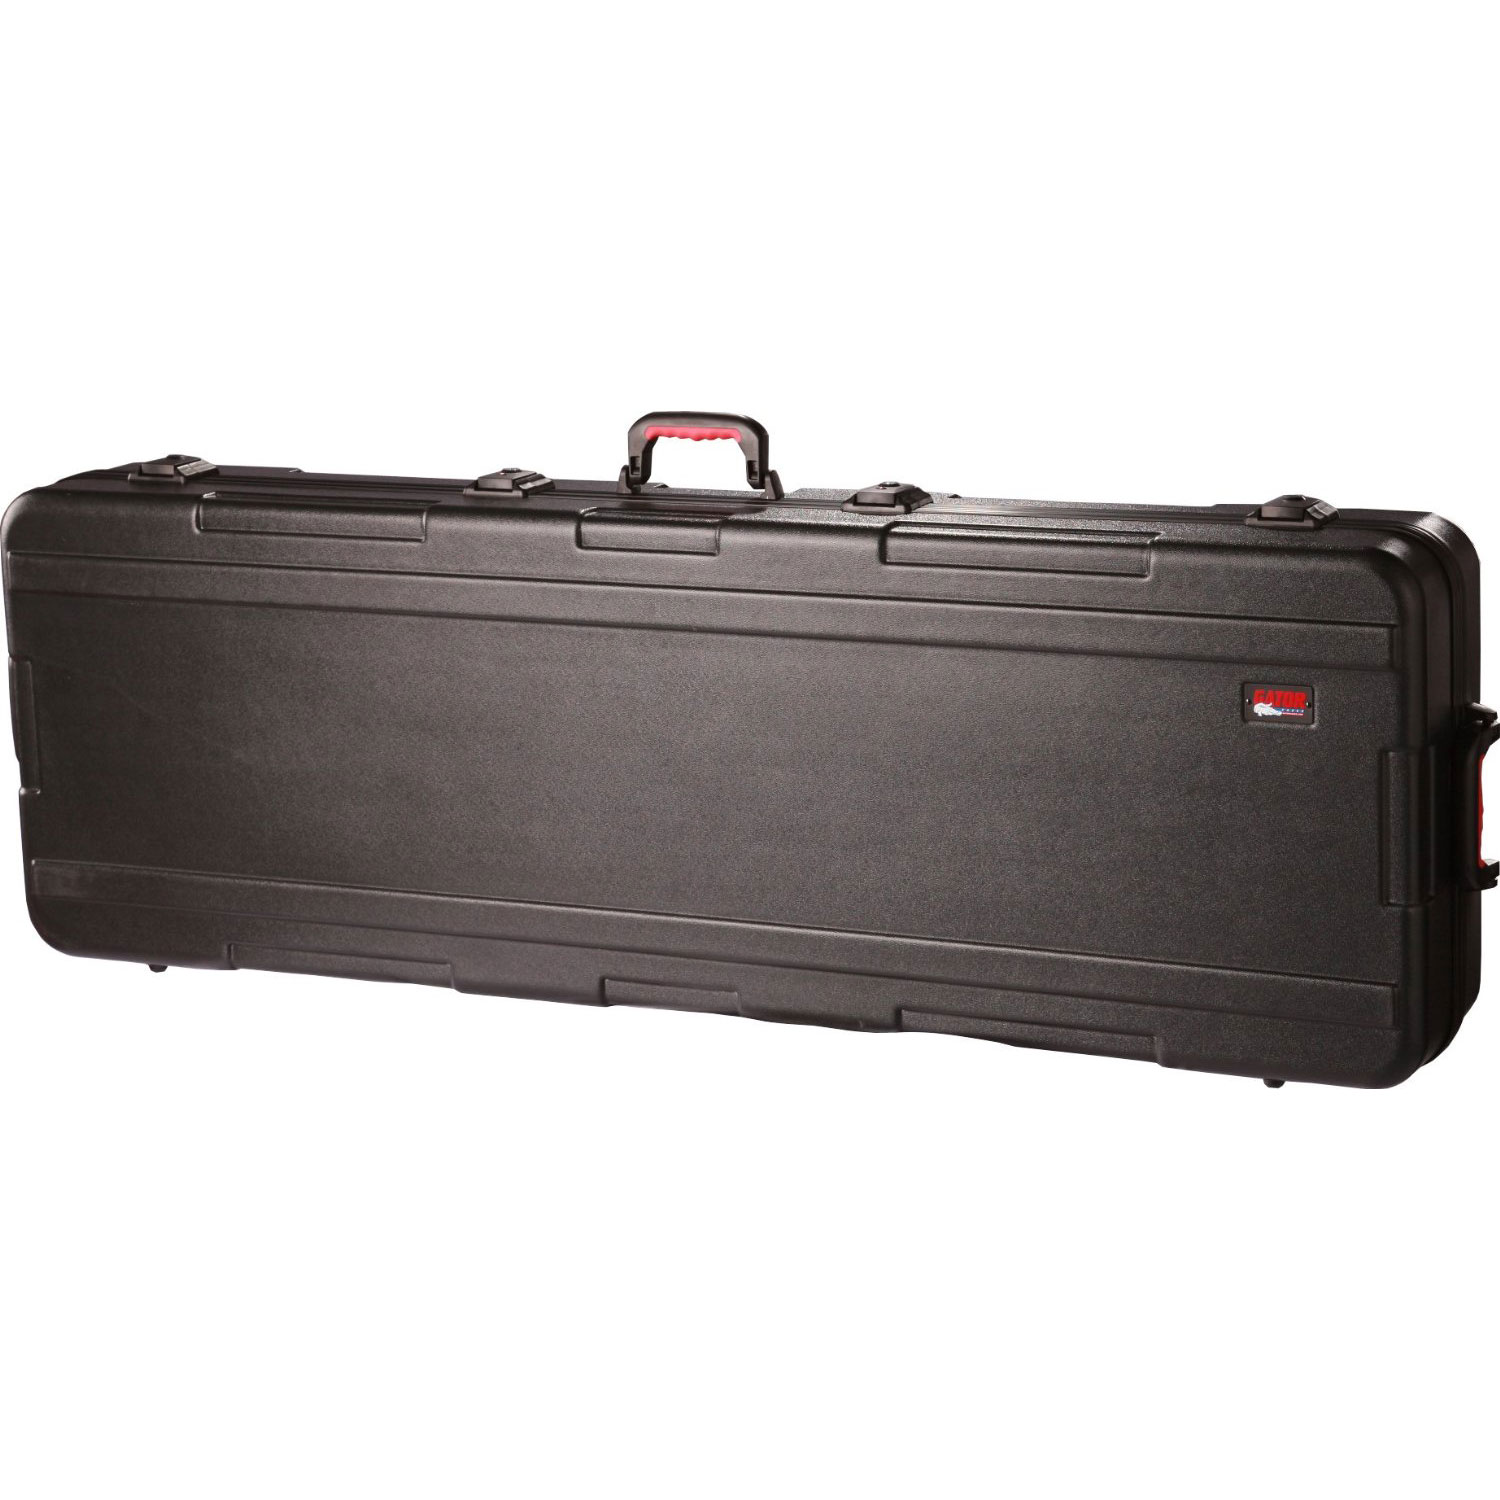 Gator Cases ATA Molded Extra Deep Hard Case for 88-Key Synthesizer/Keyboard